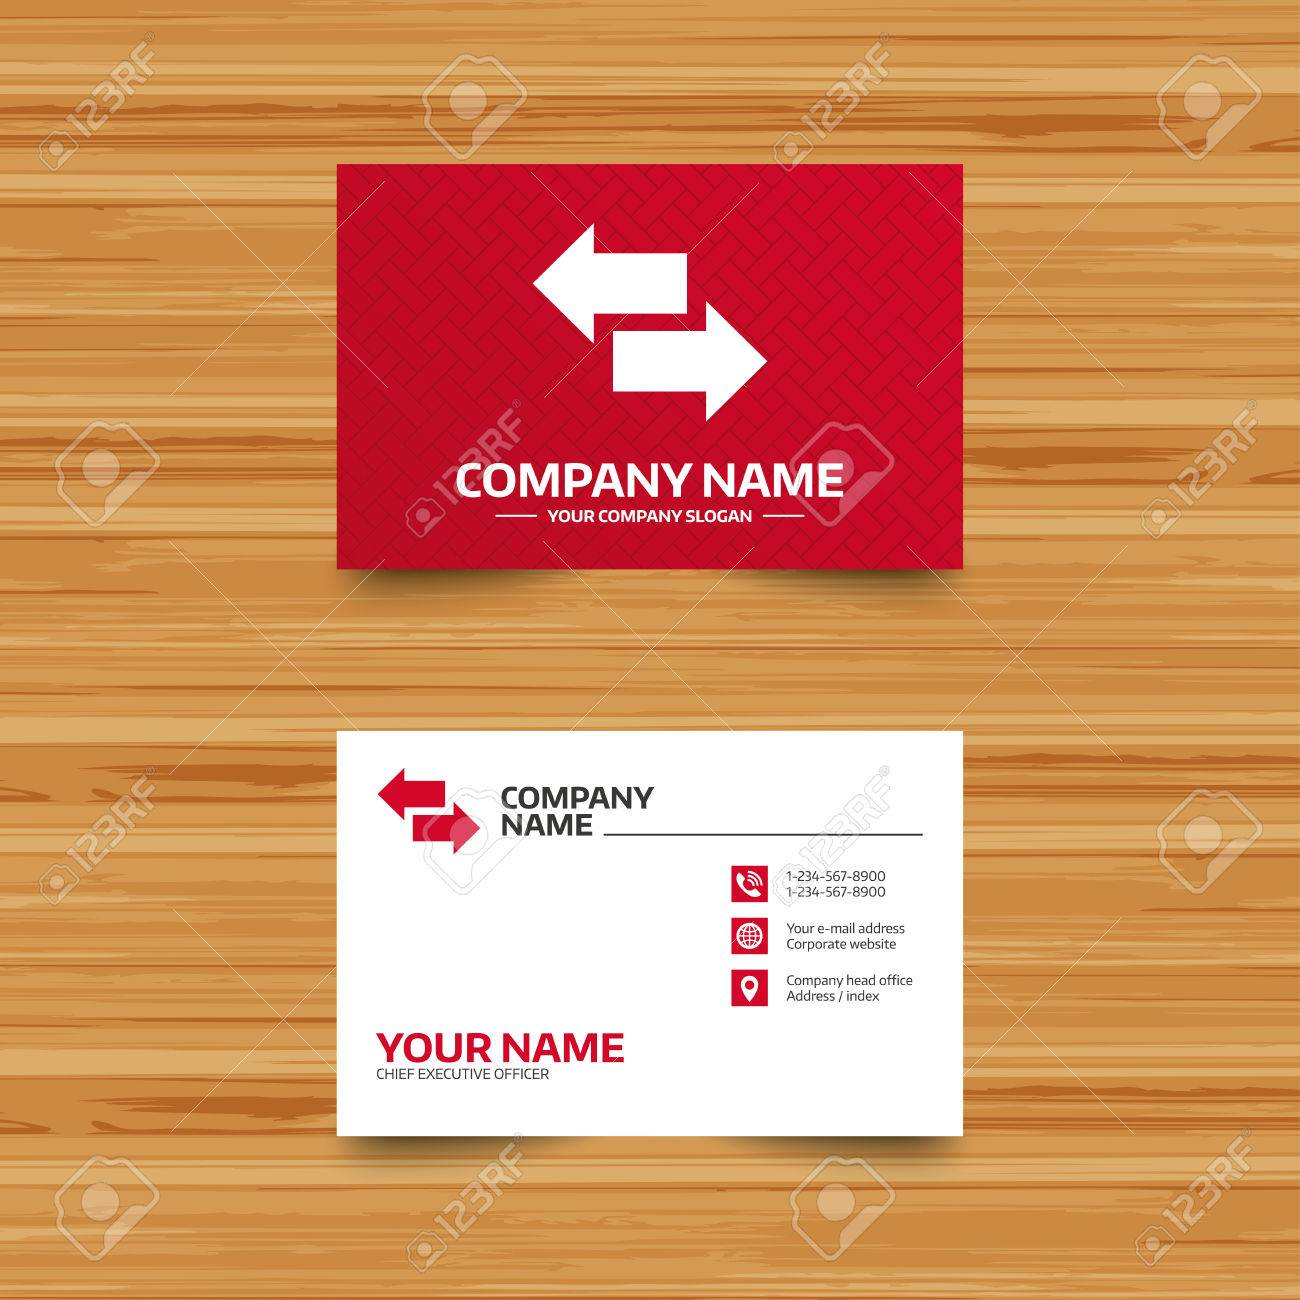 Business cards with picture upload images free business cards business card upload image collections free business cards business card template incoming and outgoing calls sign magicingreecefo Gallery